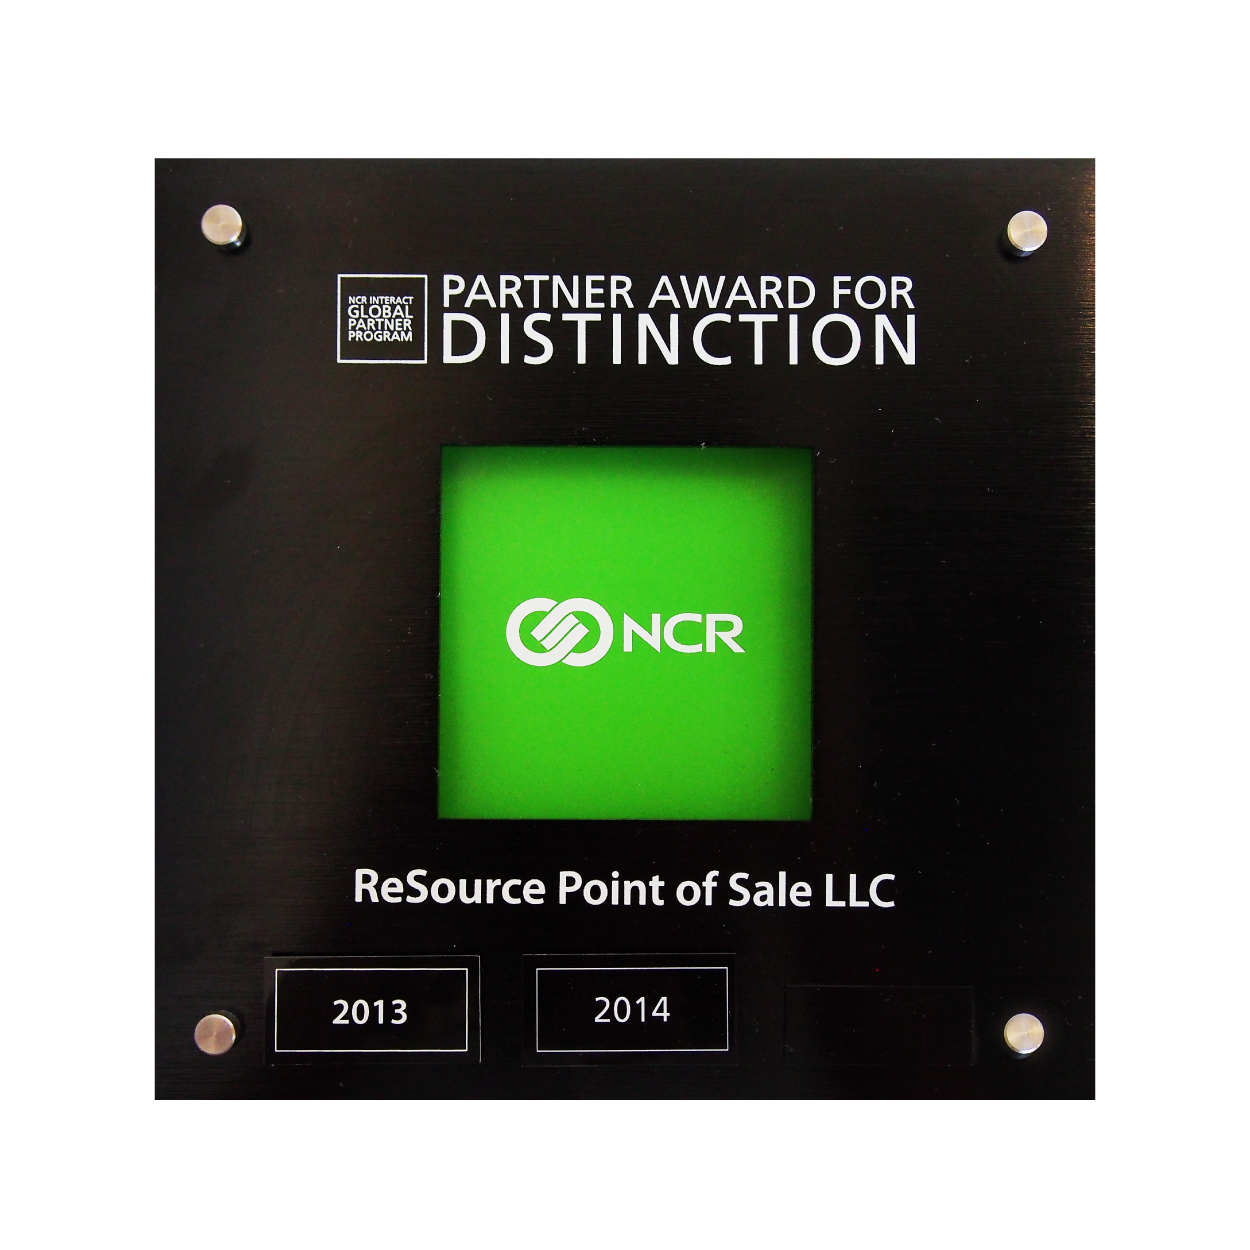 NCR-PARTNER-DISTINCTION-AWARD